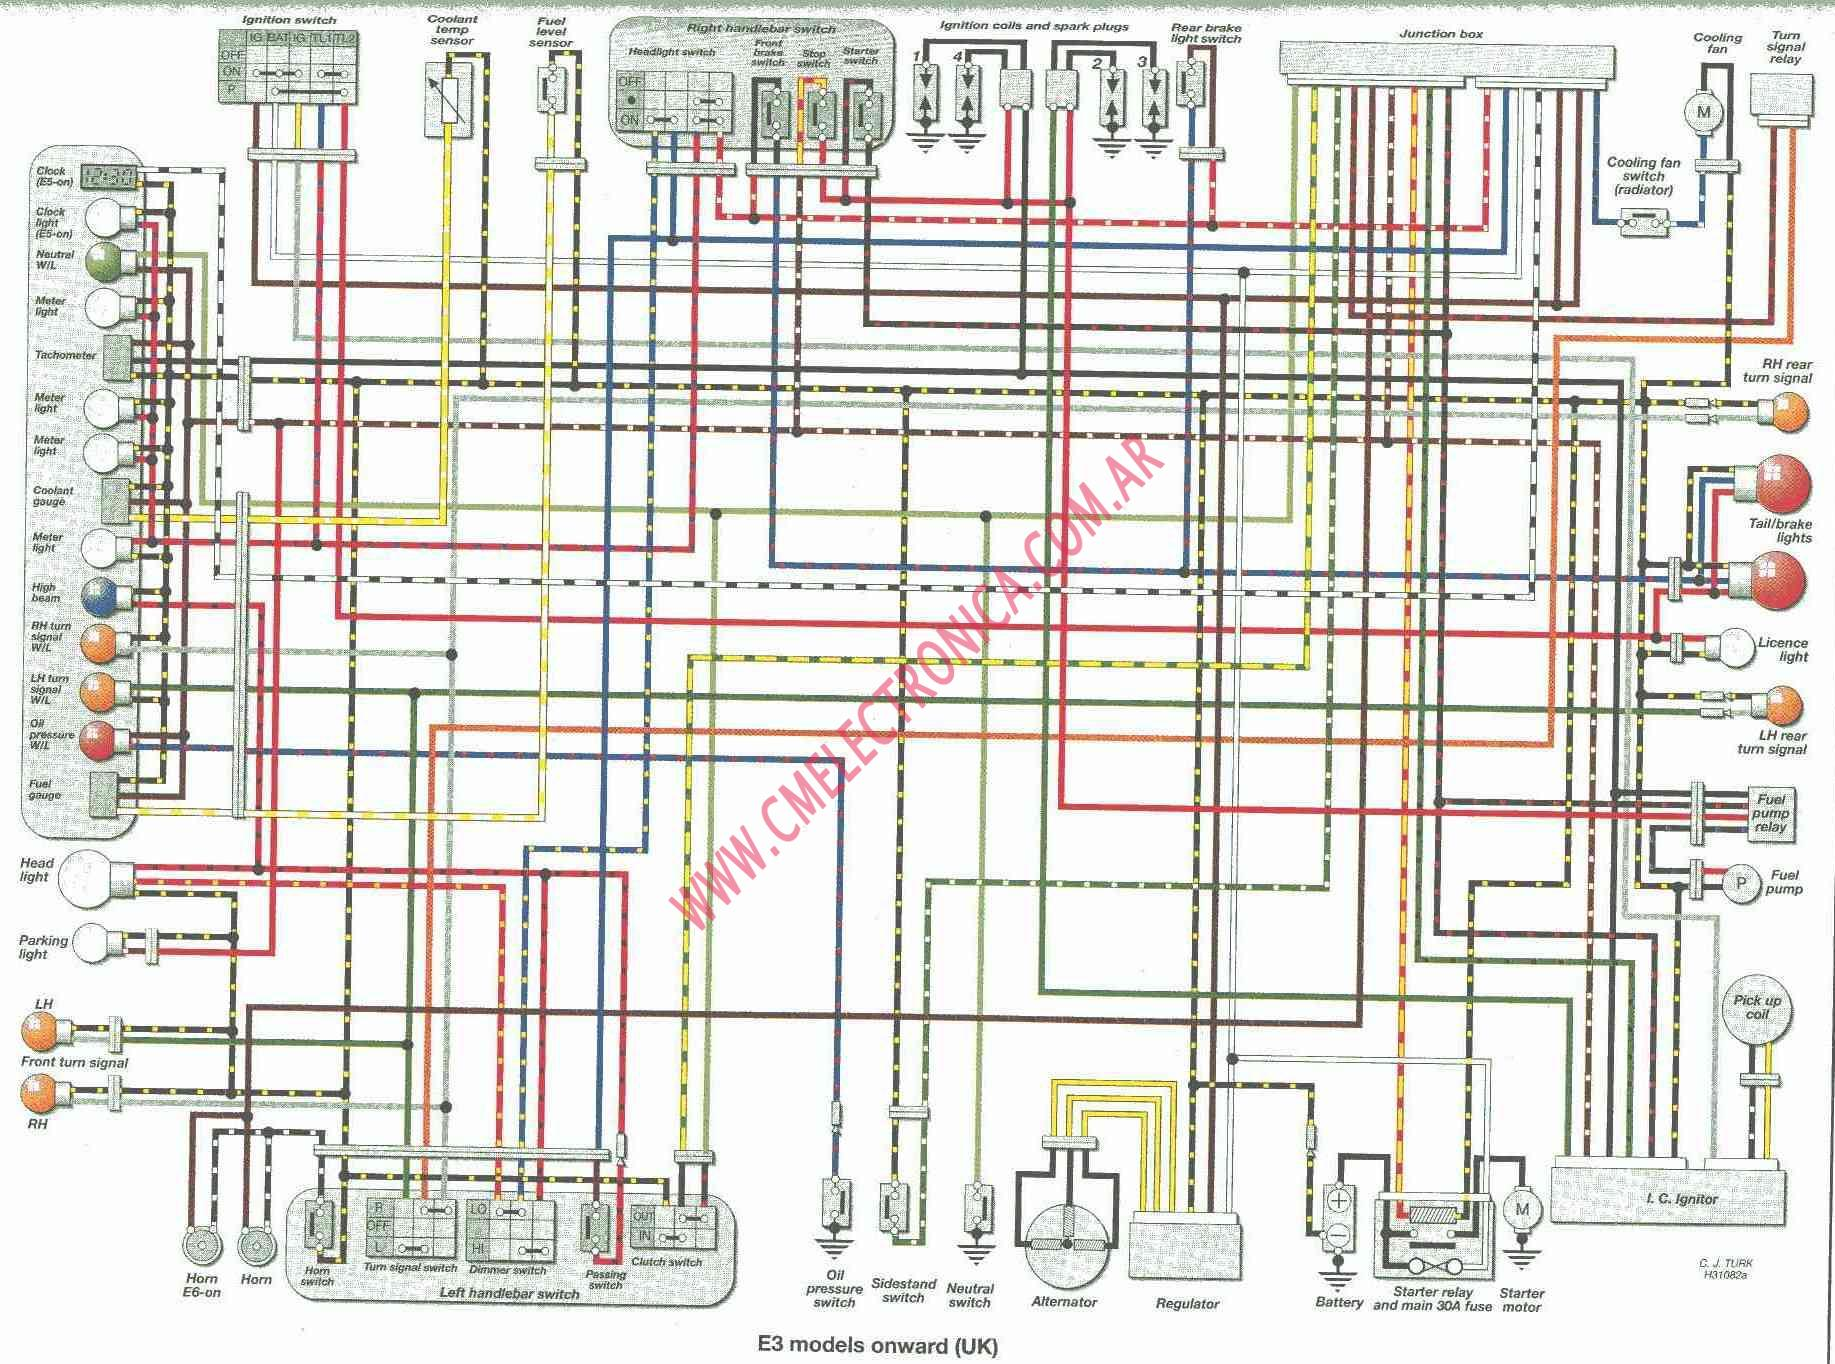 kawasaki-zzr600_99-on Honda Cb Wiring Diagram on honda 450r wiring diagram, honda atv wiring diagram, honda 185s wiring diagram, honda elite 80 wiring diagram, honda c 200 wiring diagram,